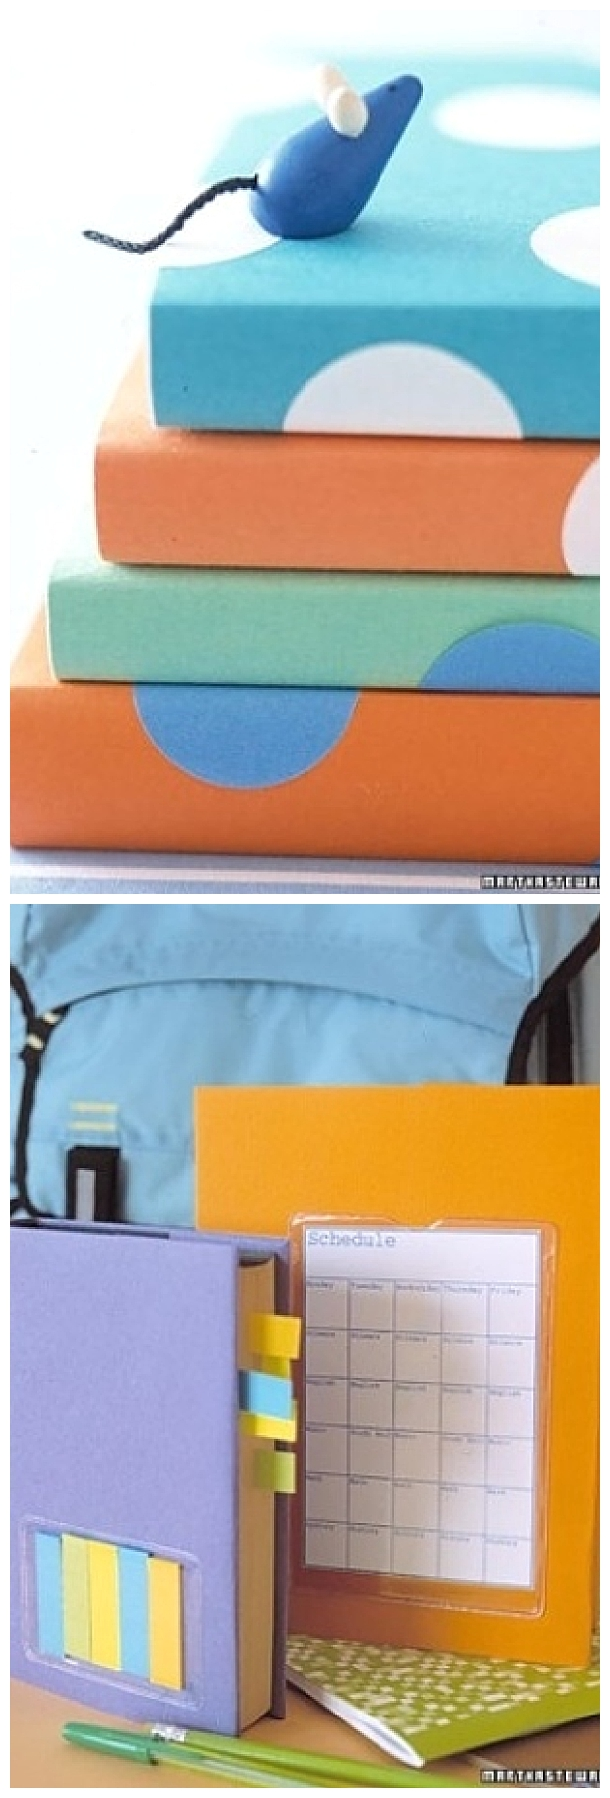 DIY Back to School Projects for Teens and Tweens - Do it yourself Book Covers with Plastic Pockets to hold your stuff - tutorial via martha stewart